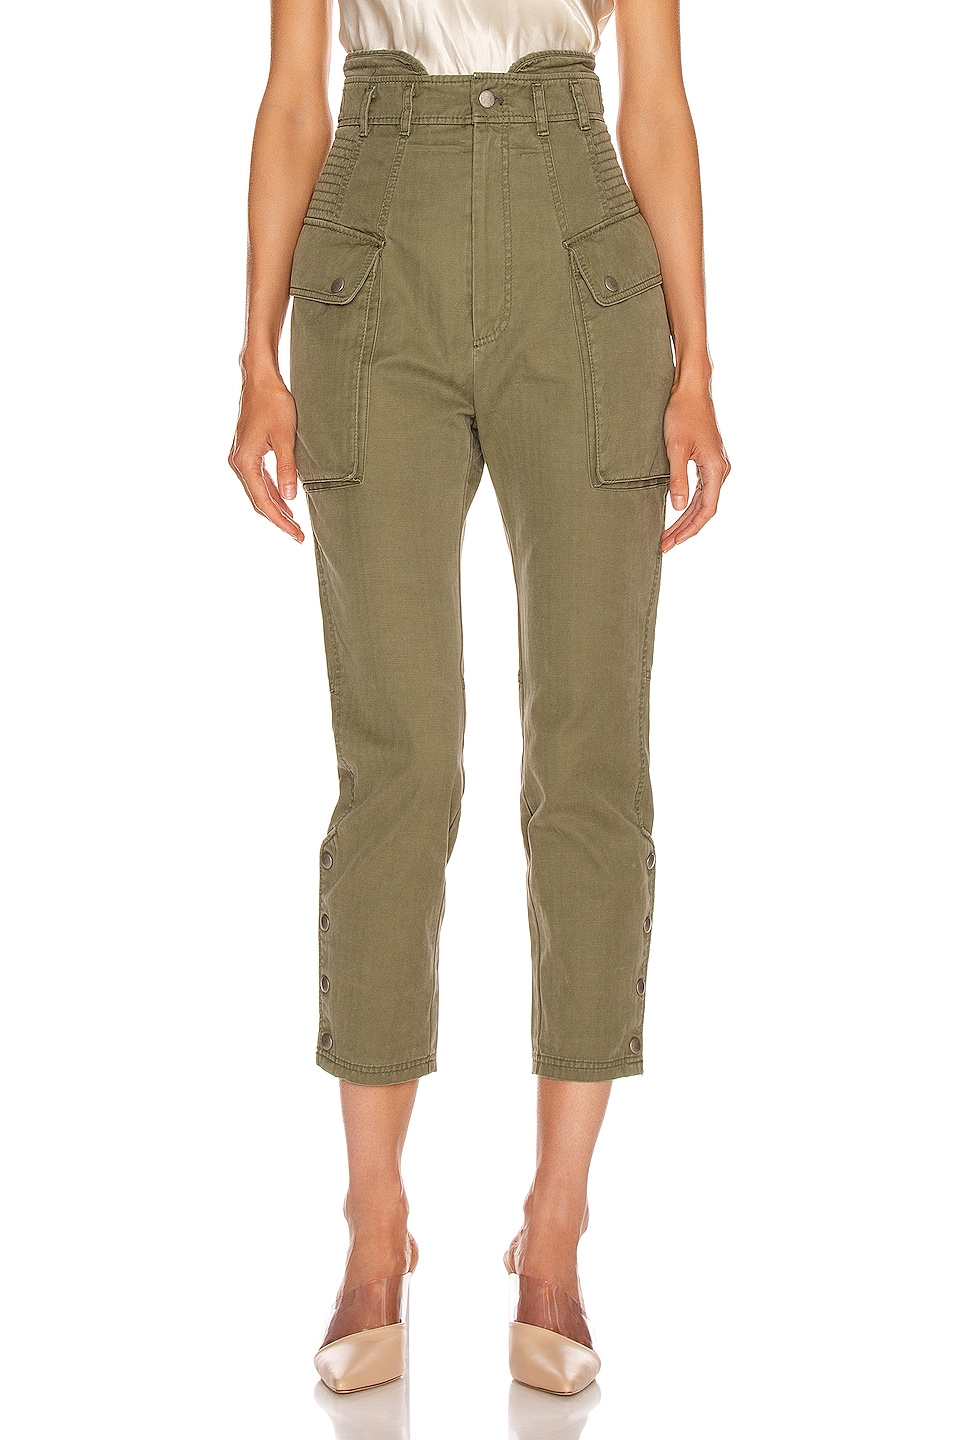 Image 1 of Marissa Webb Belle Herringbone Pant in Military Green